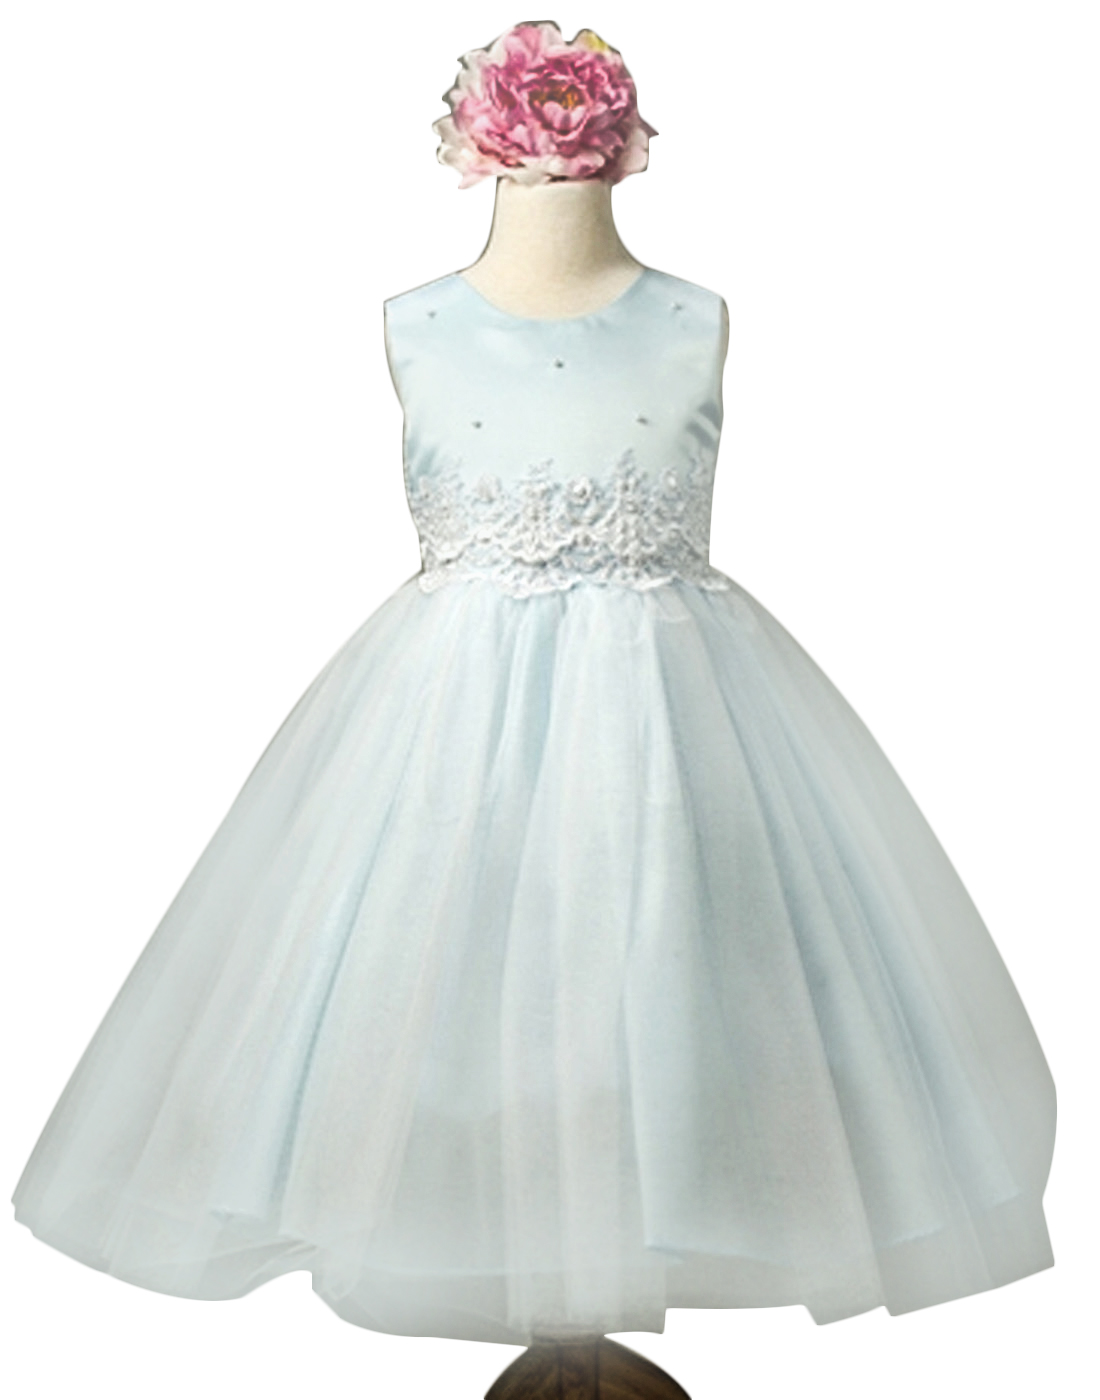 Efavormart Pearl and Lace Embellished Tulle Dress Birthday Girl Dress Junior Flower Girl Wedding Party Gown Girls Dress For Wedding